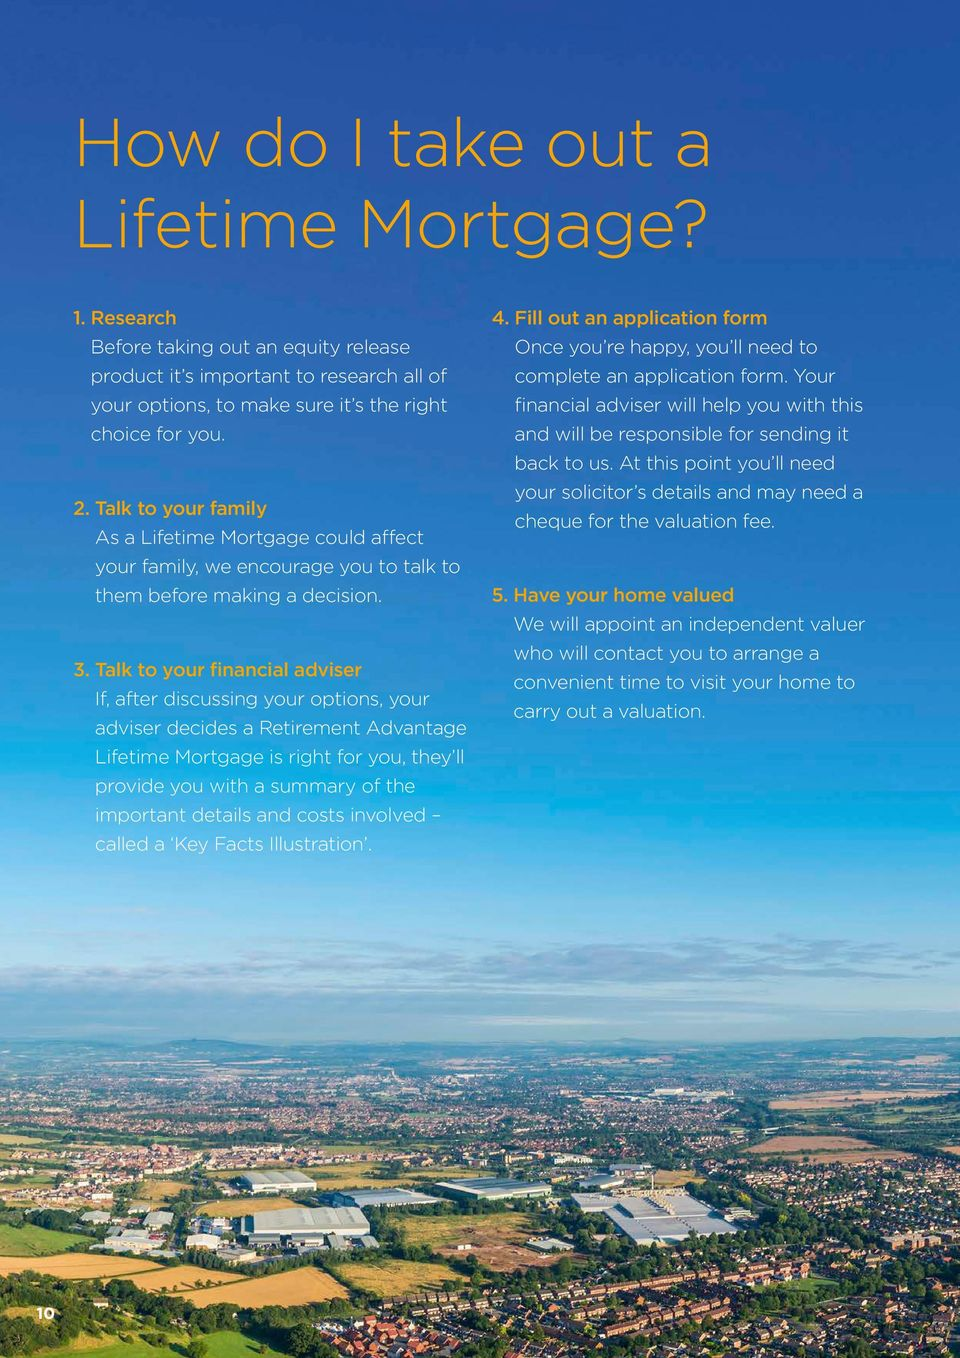 Talk to your financial adviser If, after discussing your options, your adviser decides a Retirement Advantage Lifetime Mortgage is right for you, they ll provide you with a summary of the important